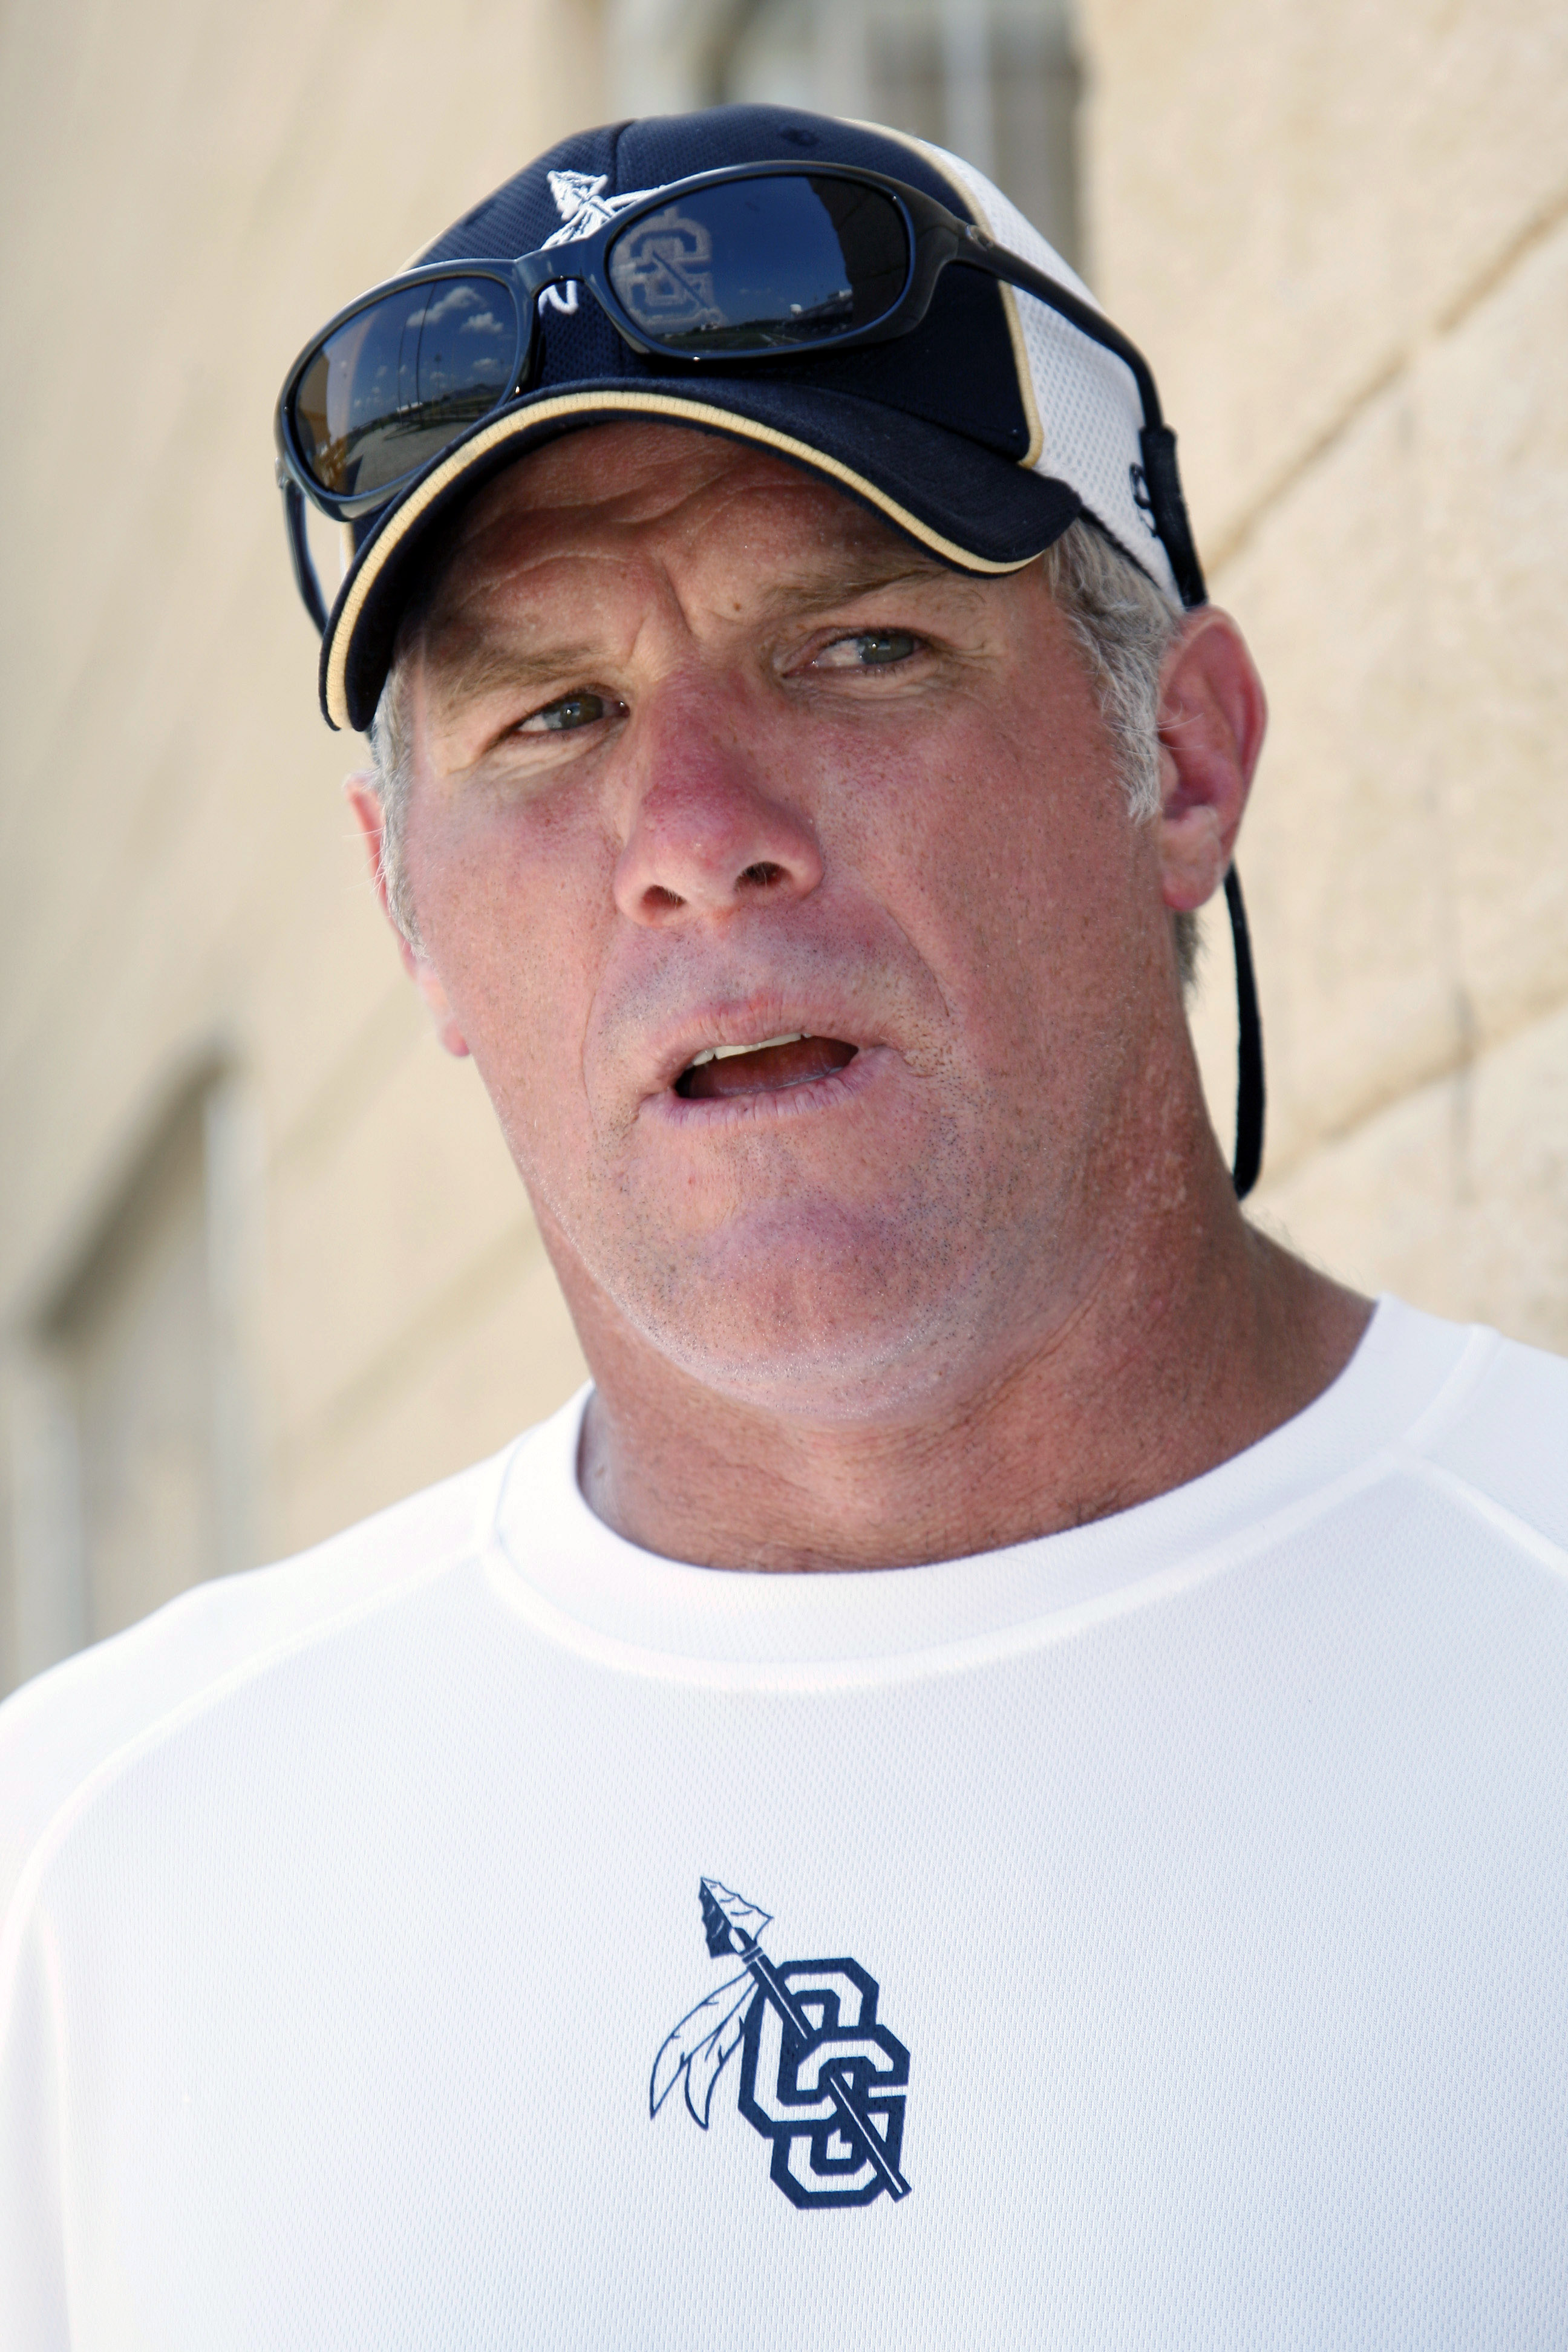 Former NFL quarterback Brett Favre, now an assistant football coach at Oak Grove High School in Hattiesburg, Miss., speaks about the transition from player to coach during the first day of official practice for the fall high school football season, Monday